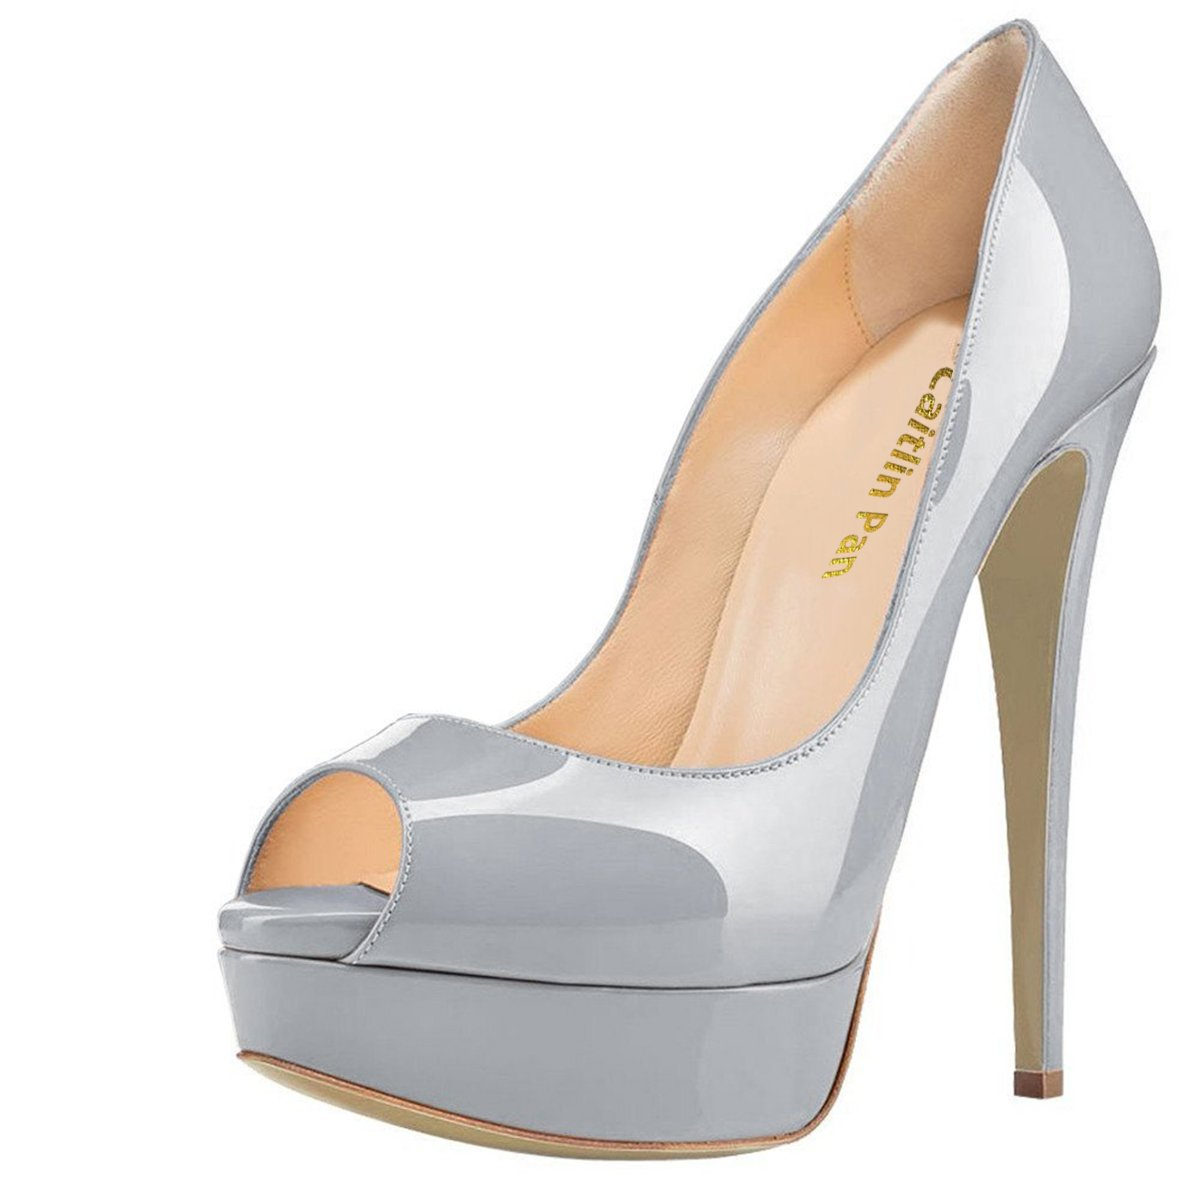 Caitlin B075MN47RS Pan Femmes Toe R0uge Escarpins Plateforme 15CM Escarpins Peep Toe 3CM Plateforme Talon Chaussures Open Toe 35-45 Grey/Fond R0uge 24eee65 - conorscully.space